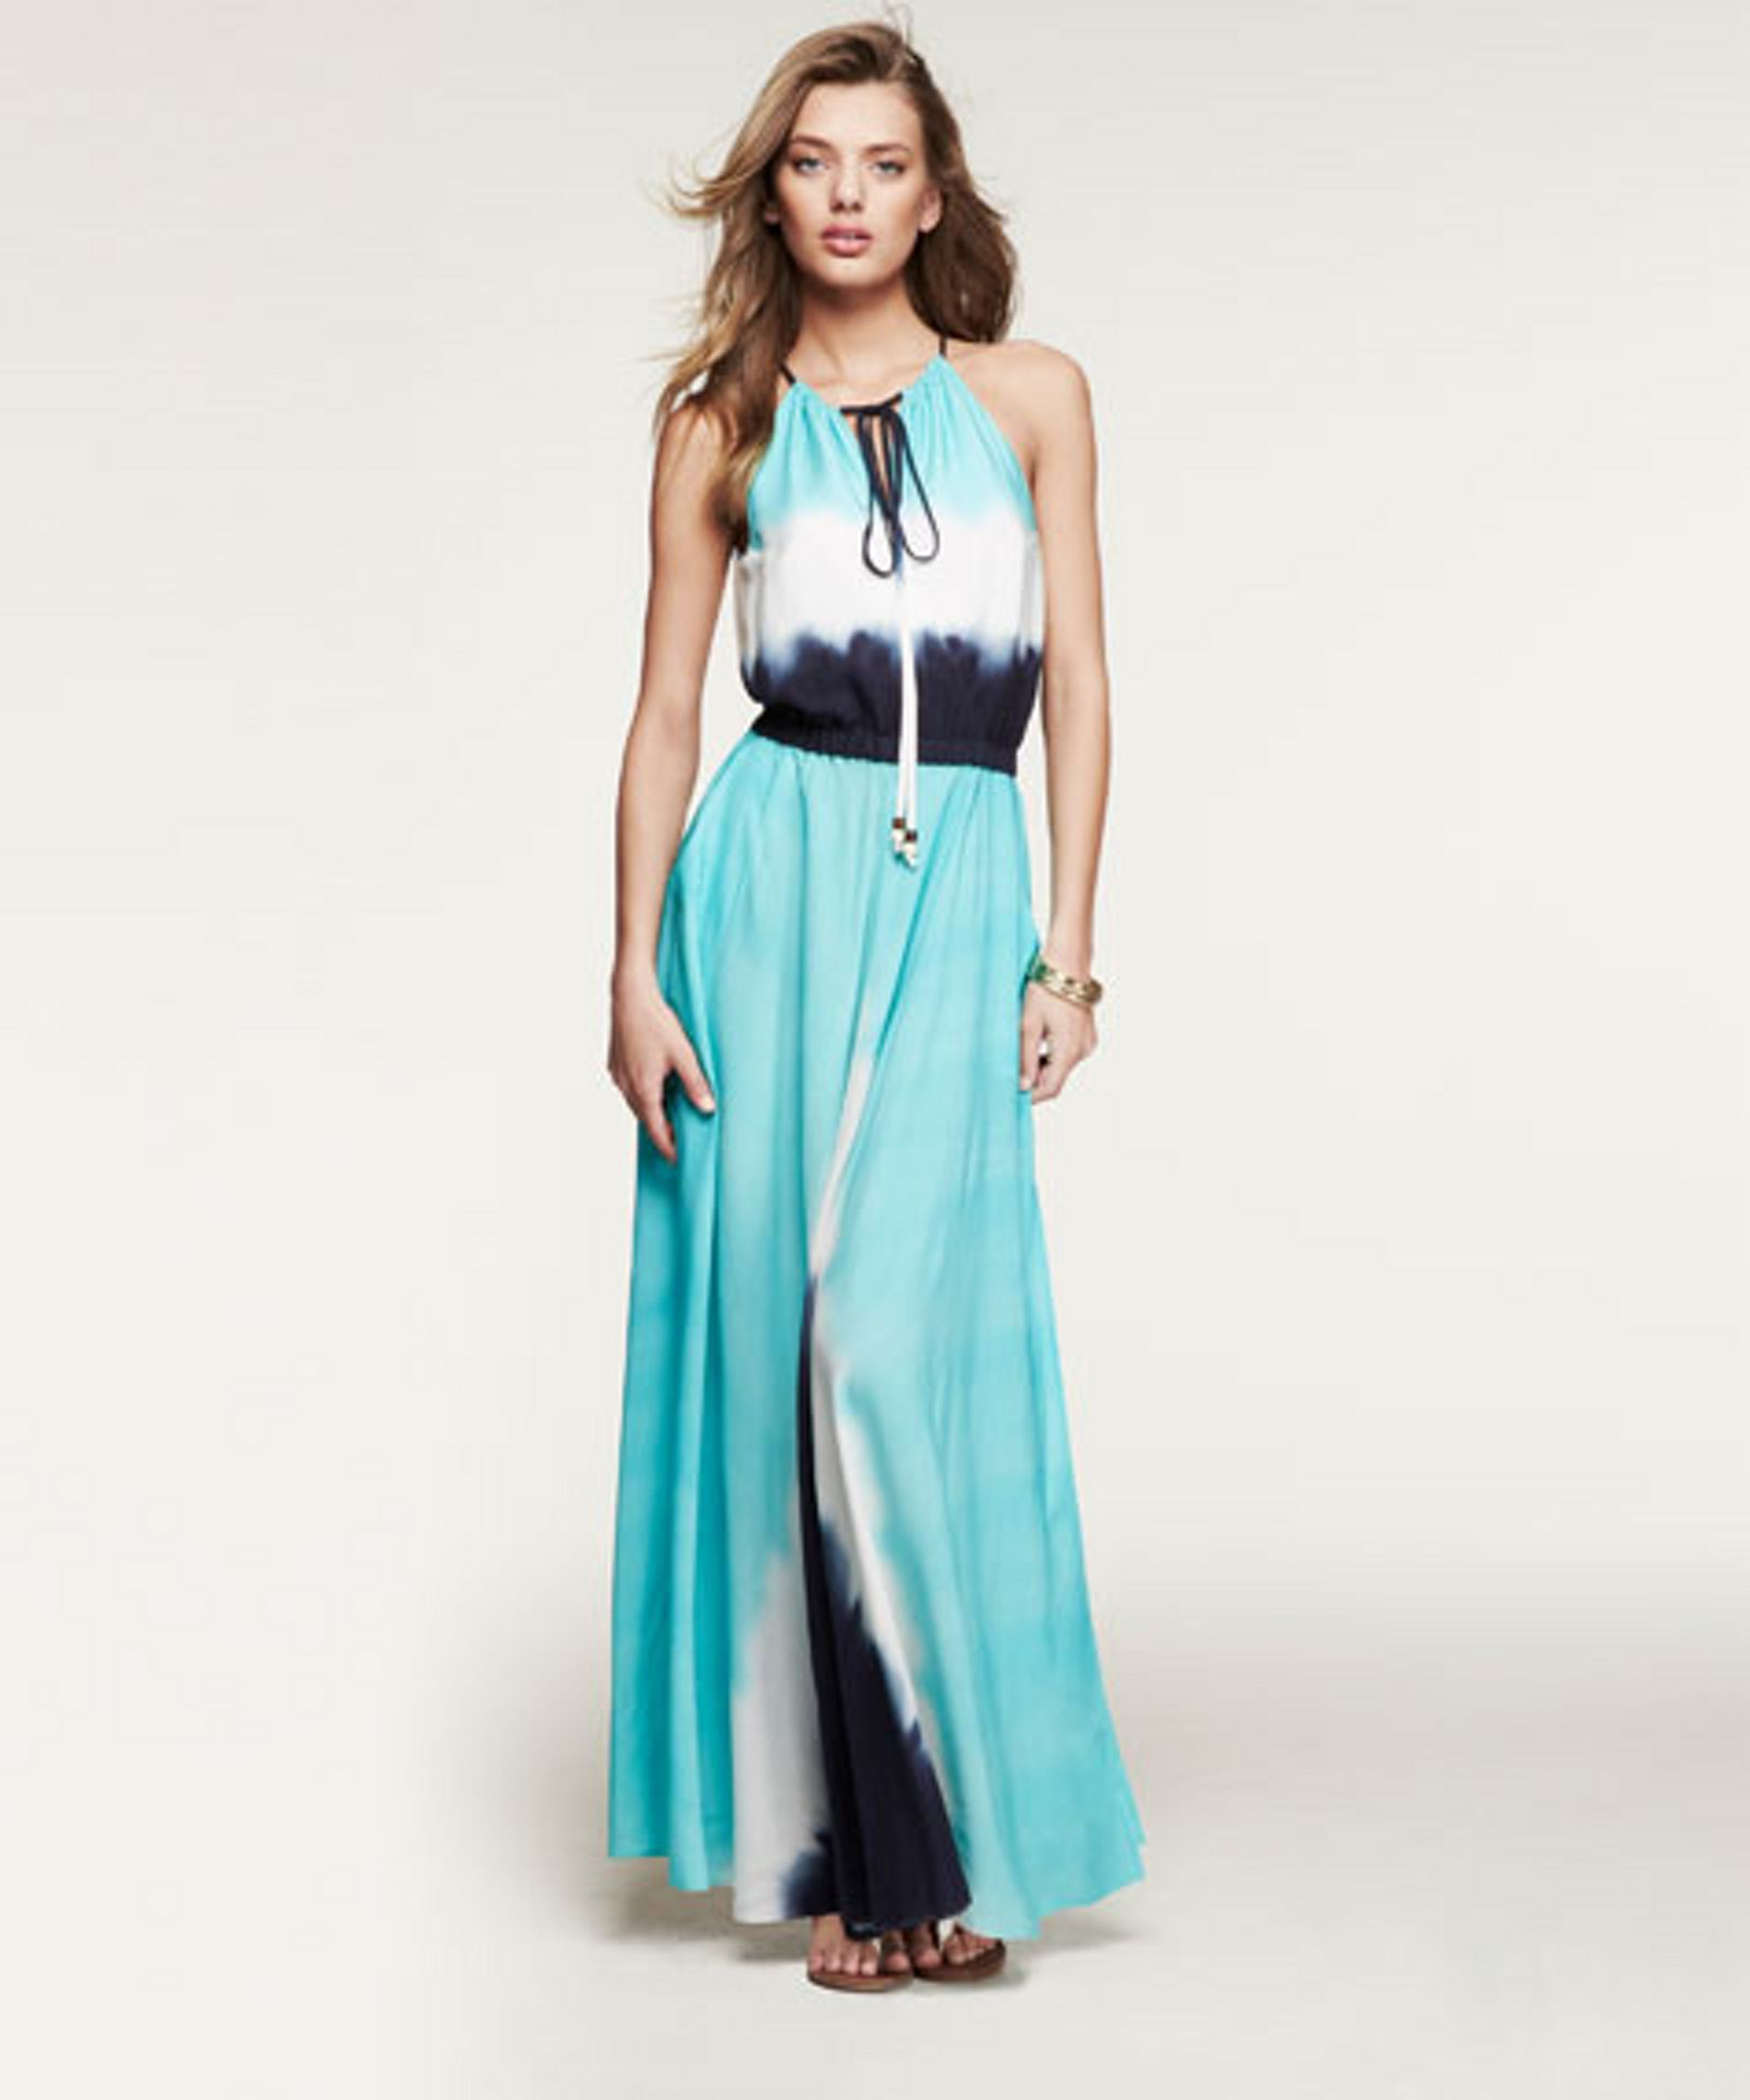 Express long summer dresses